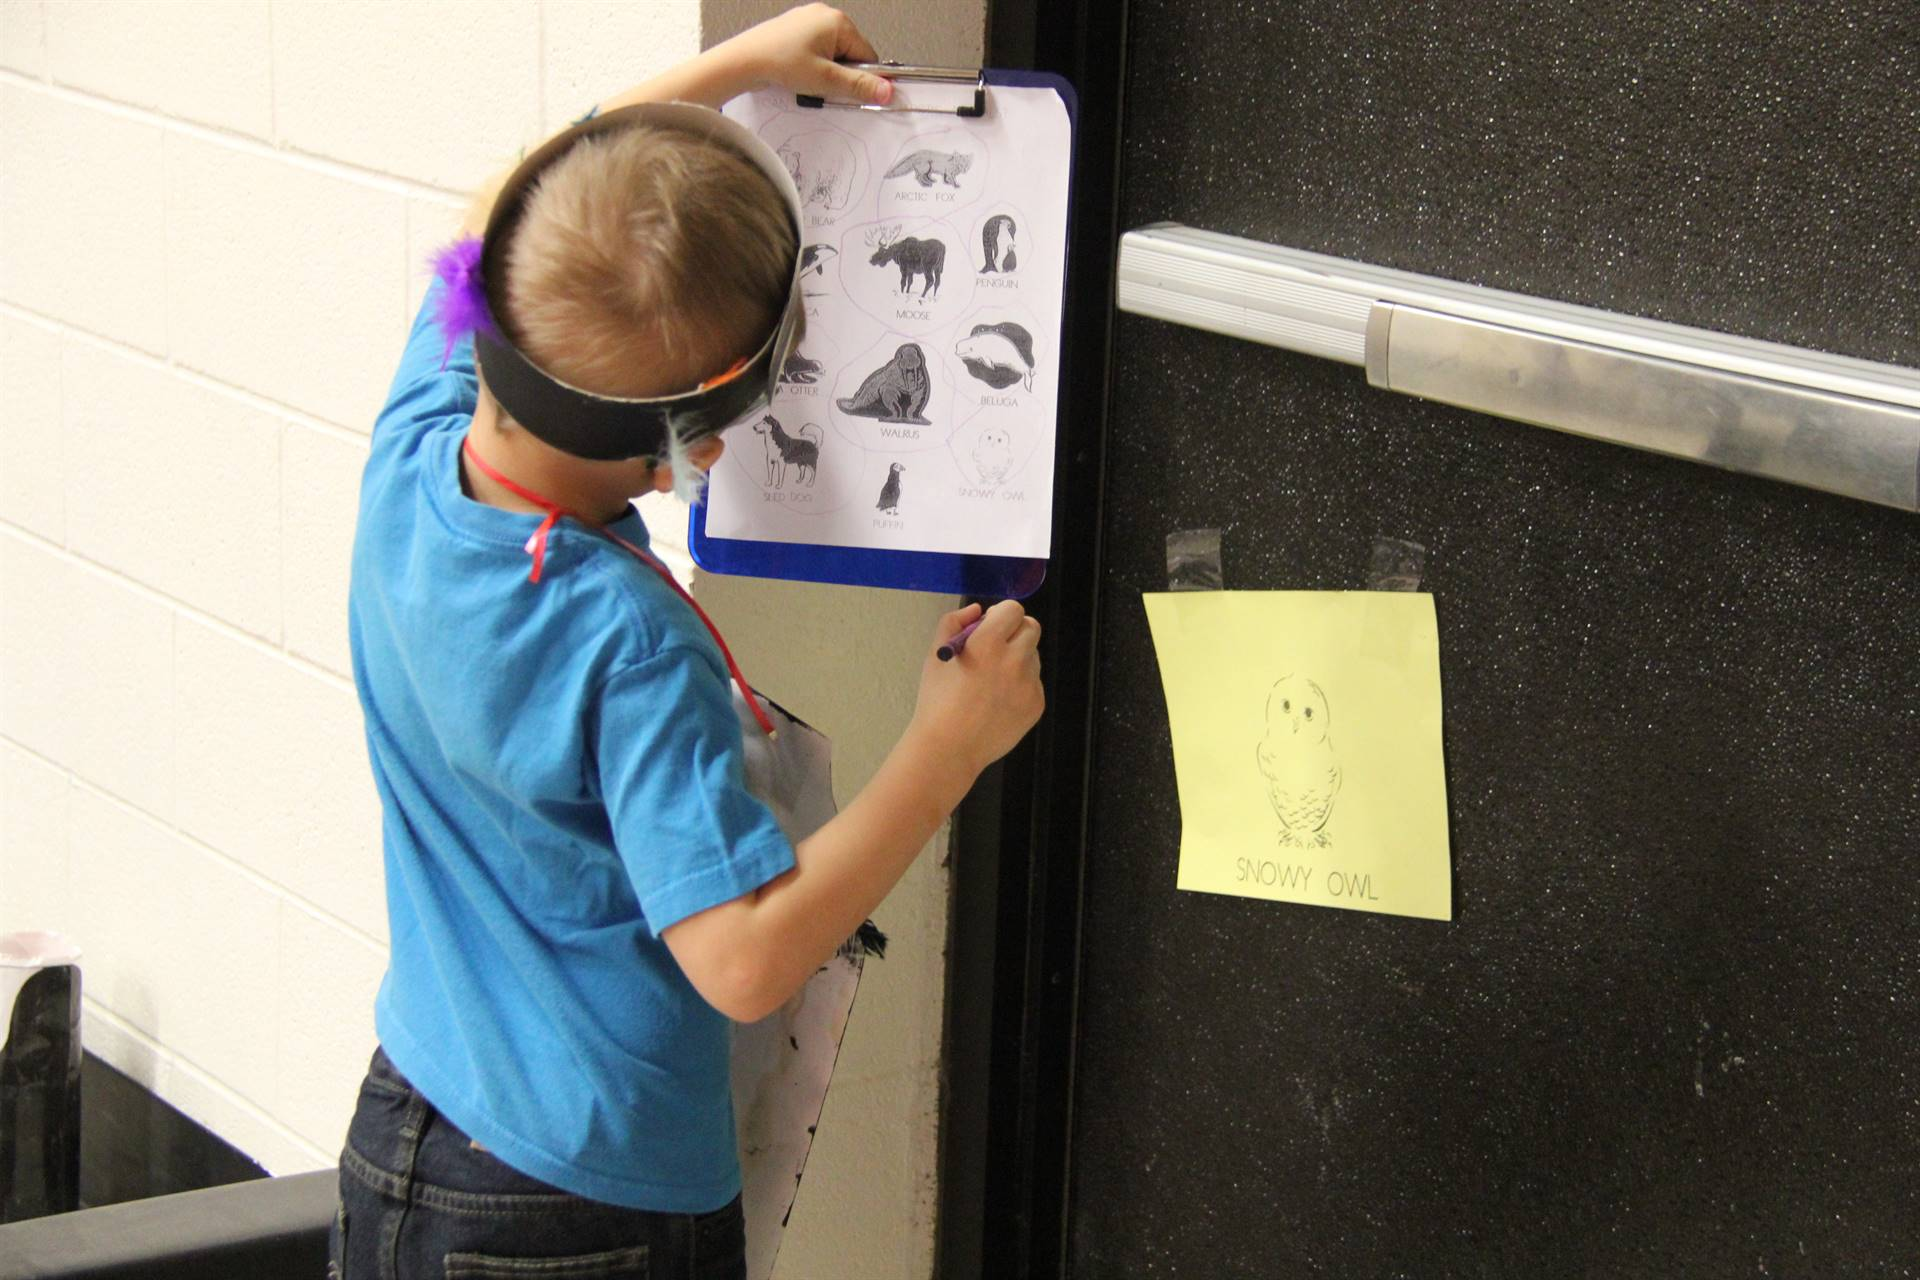 student looking at scavenger hunt sign